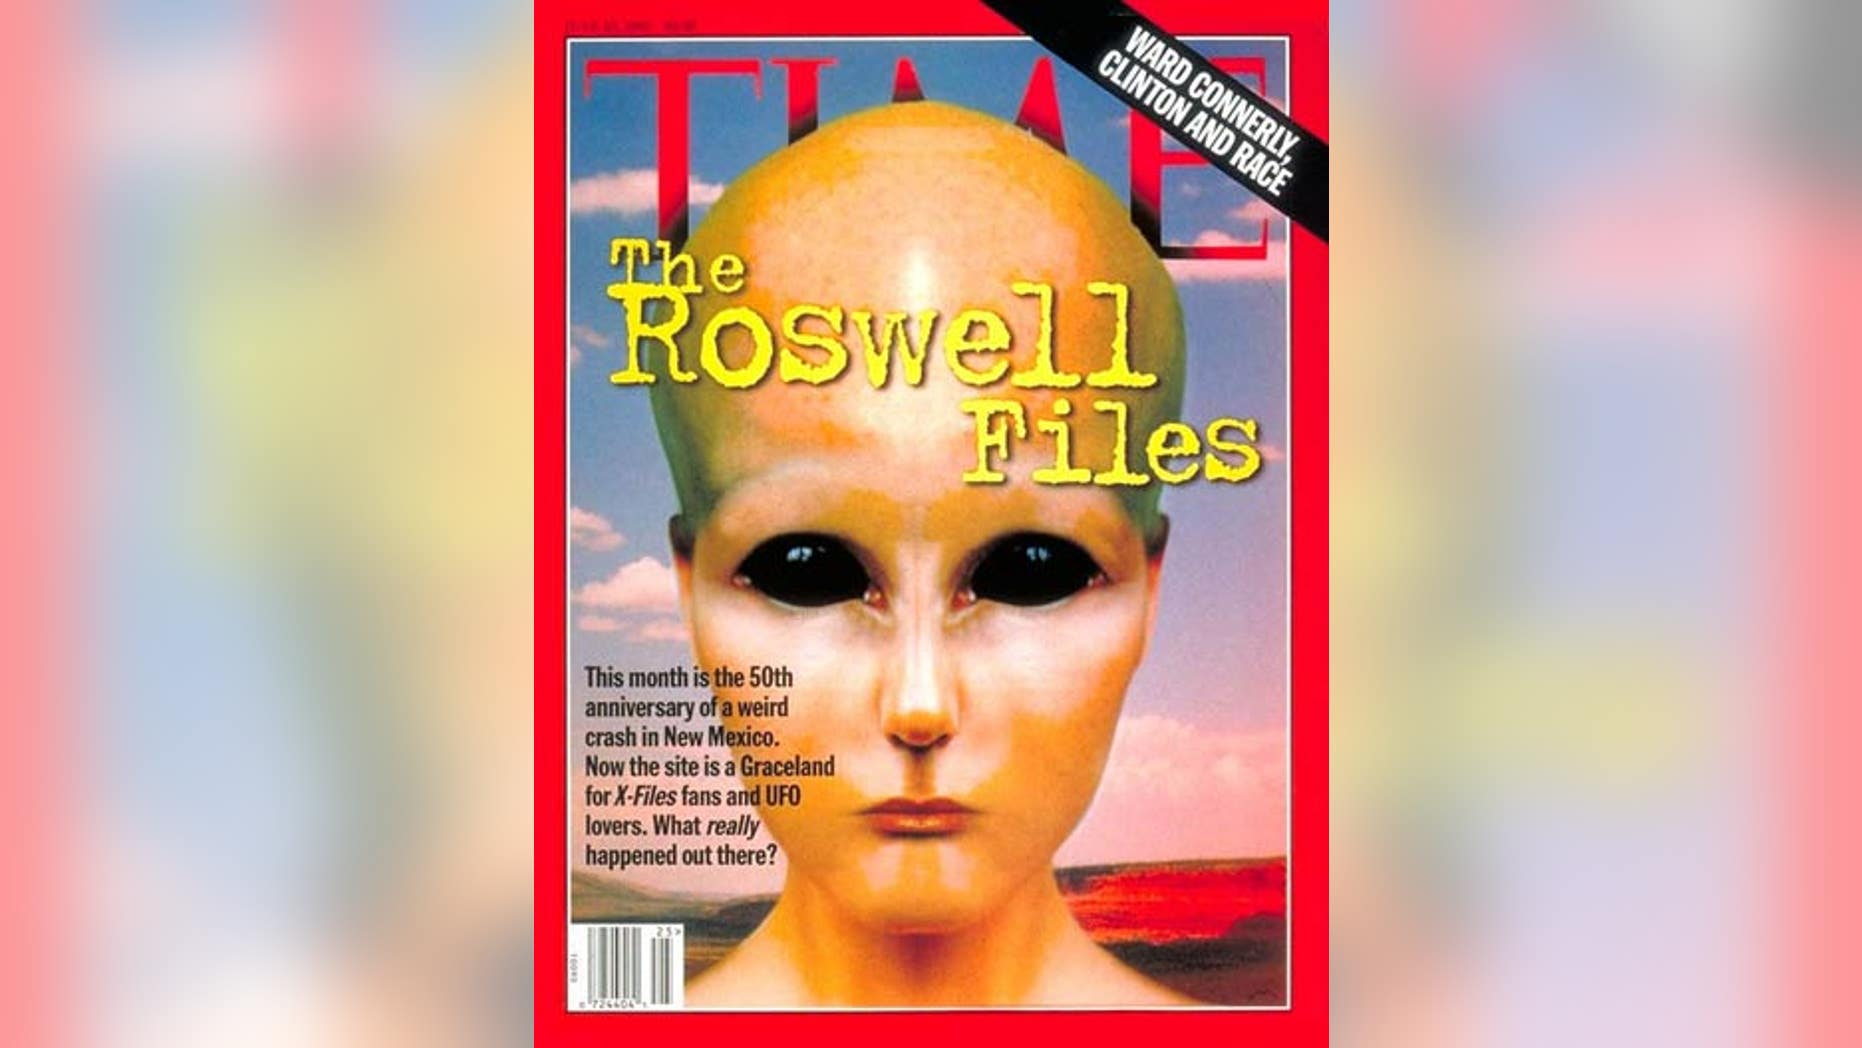 Westlake Legal Group RoswellIncidentTime This Day in History: June 24 fox-news/us/this-day-in-history fox news fnc/us fnc article 87a6e47e-a6f2-5dc4-bded-3233958eec7e